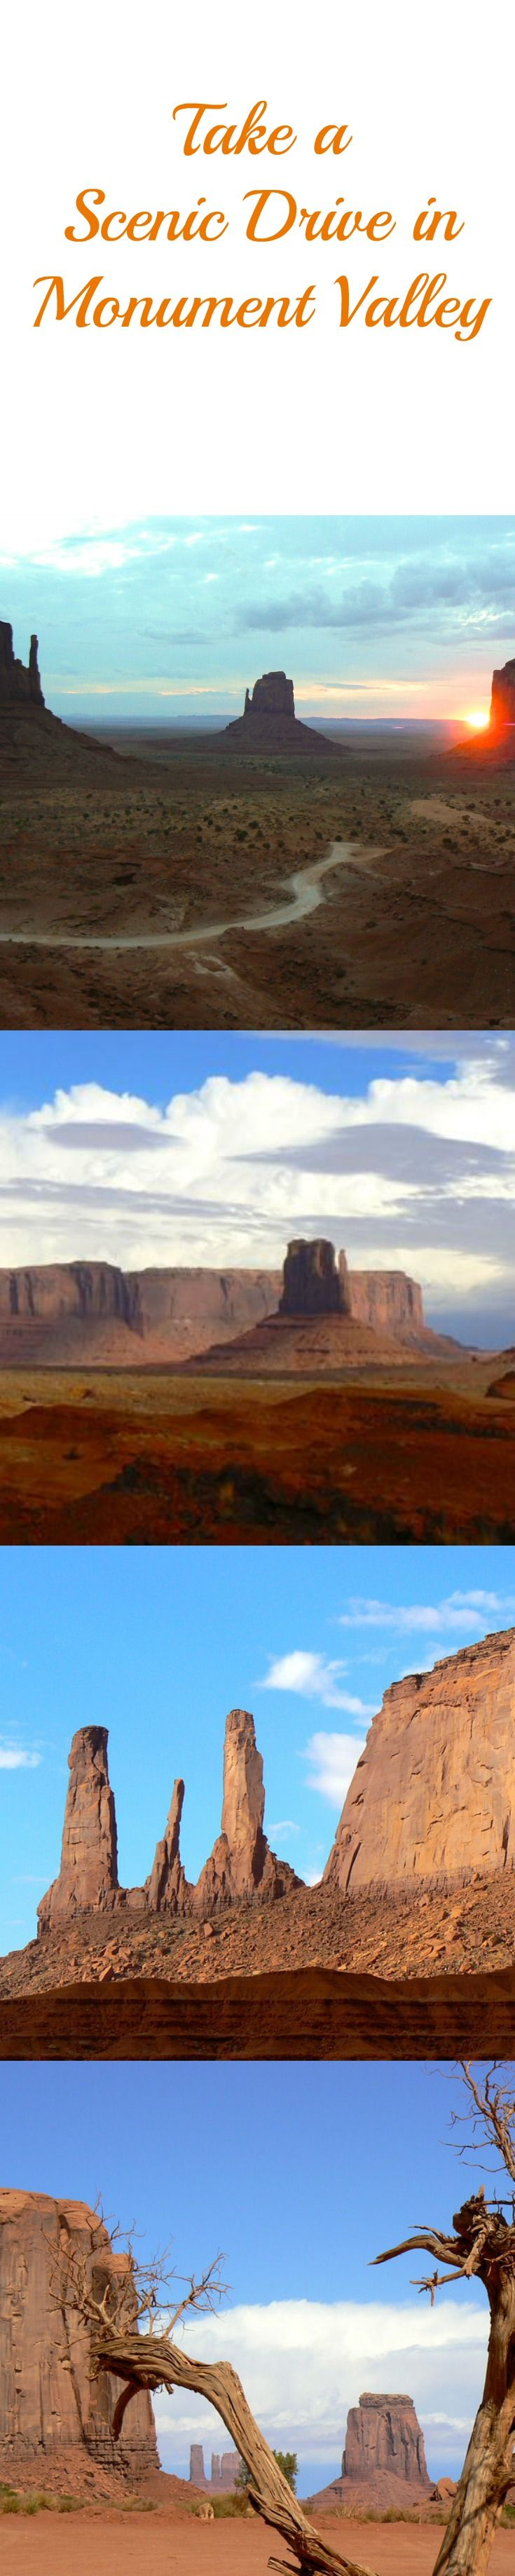 Take a scenic drive in Monument Valley. We show you exactly what to expect.